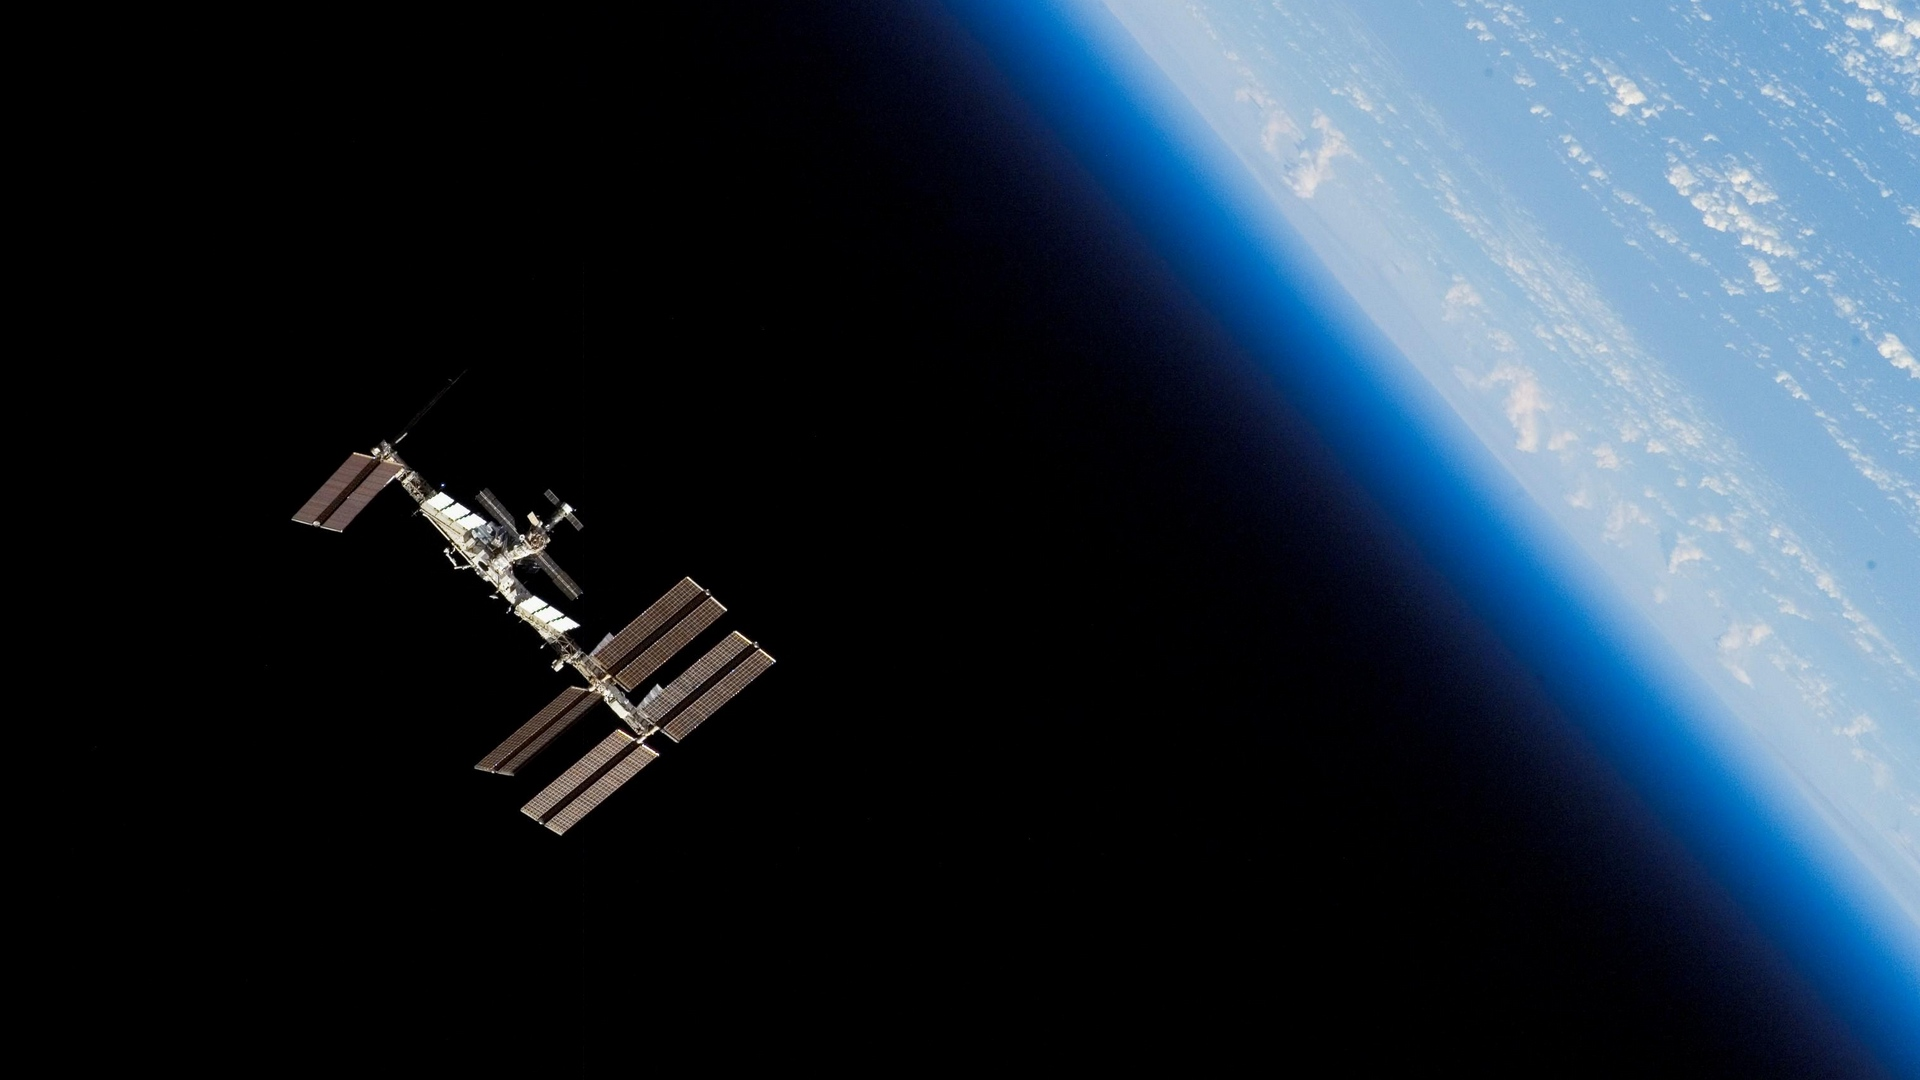 station iss space orbit planet earth x